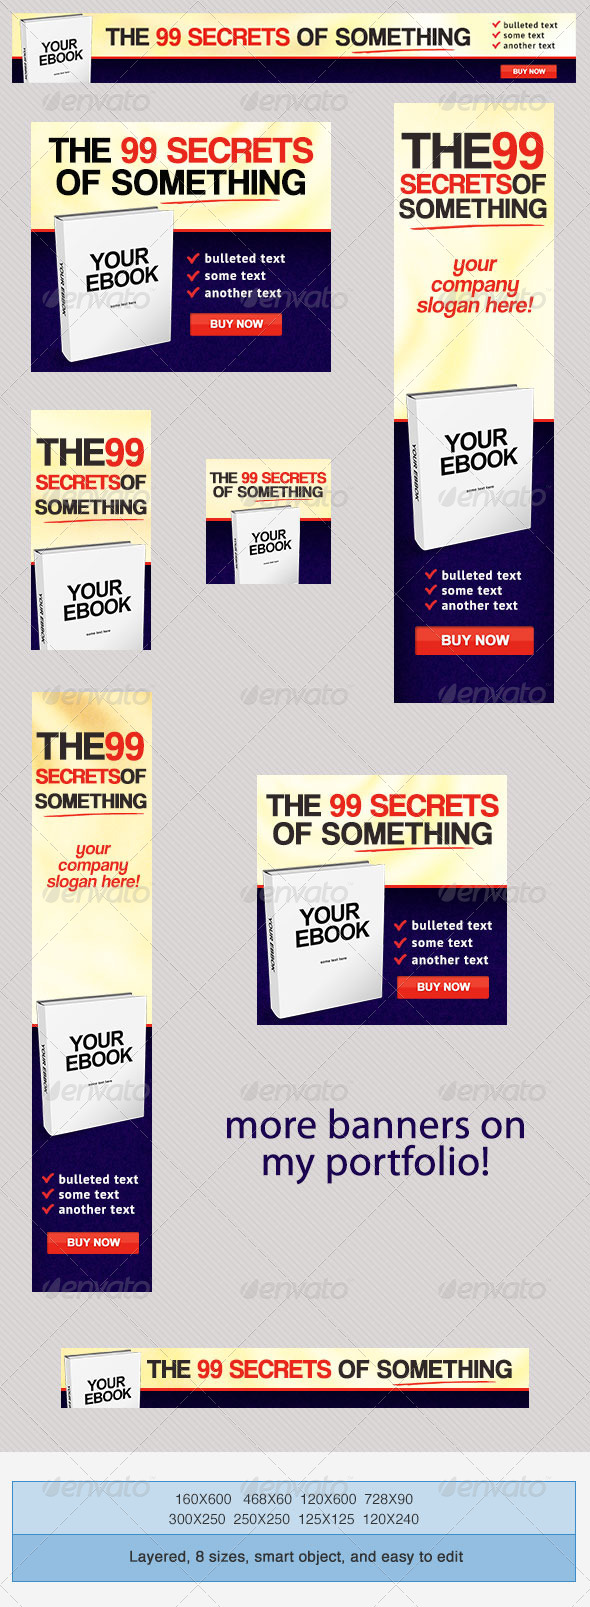 Buy Ebook PSD Banner Ad Templates - Banners & Ads Web Elements